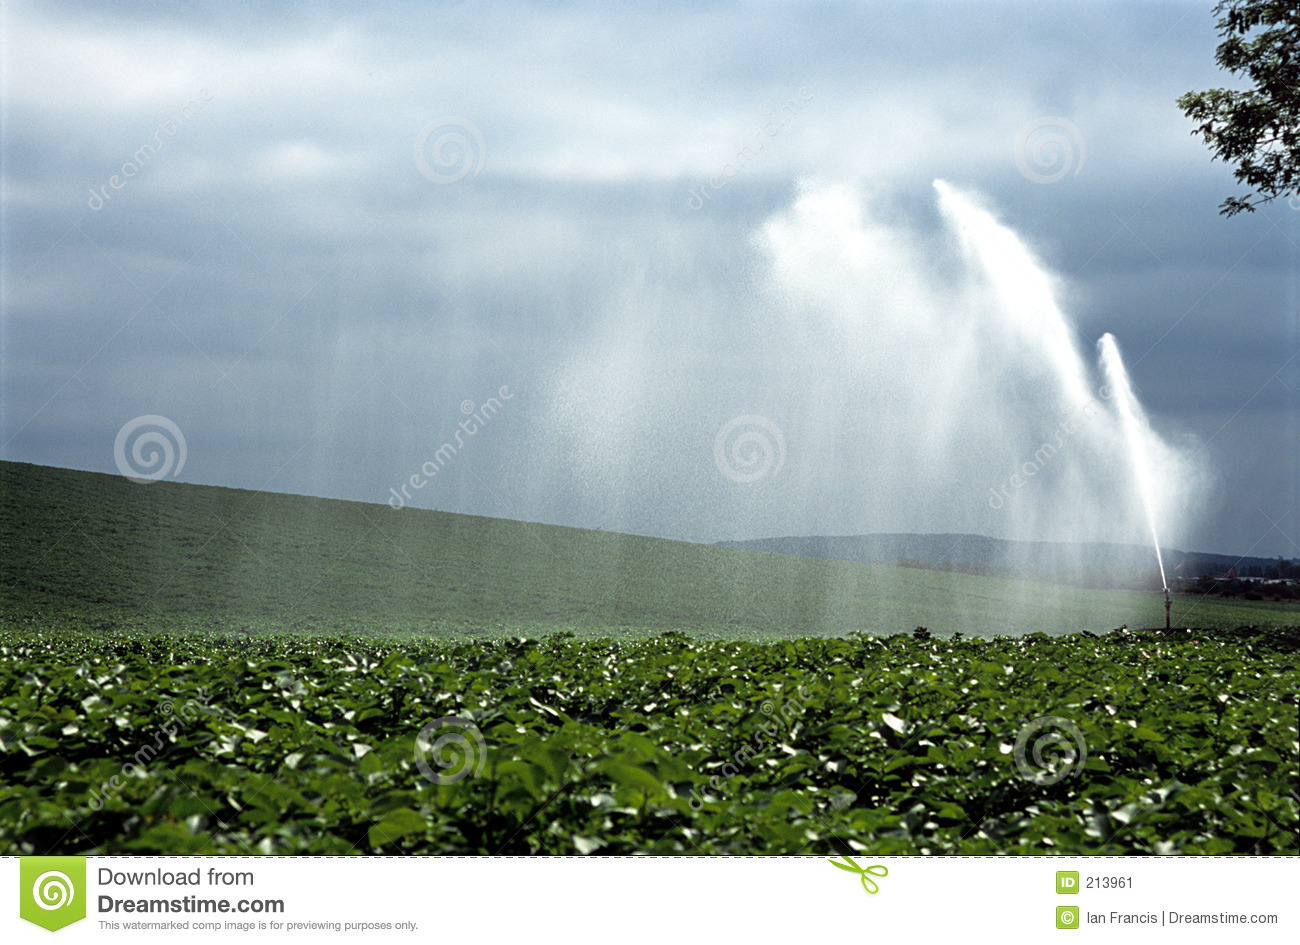 Water Crop Spraying  Stock Image   Image  213961